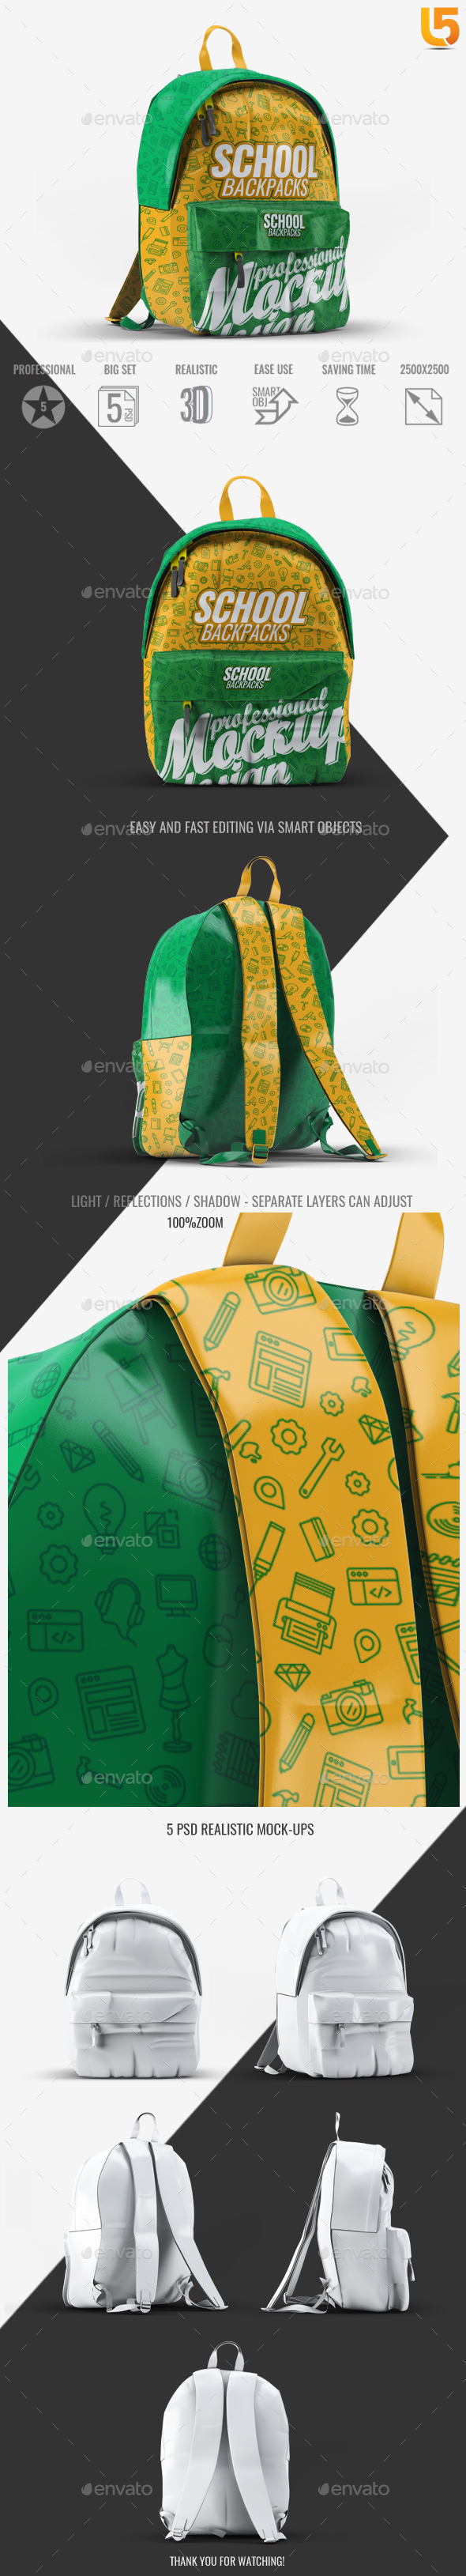 School Backpacks Mock-Up - Miscellaneous Product Mock-Ups